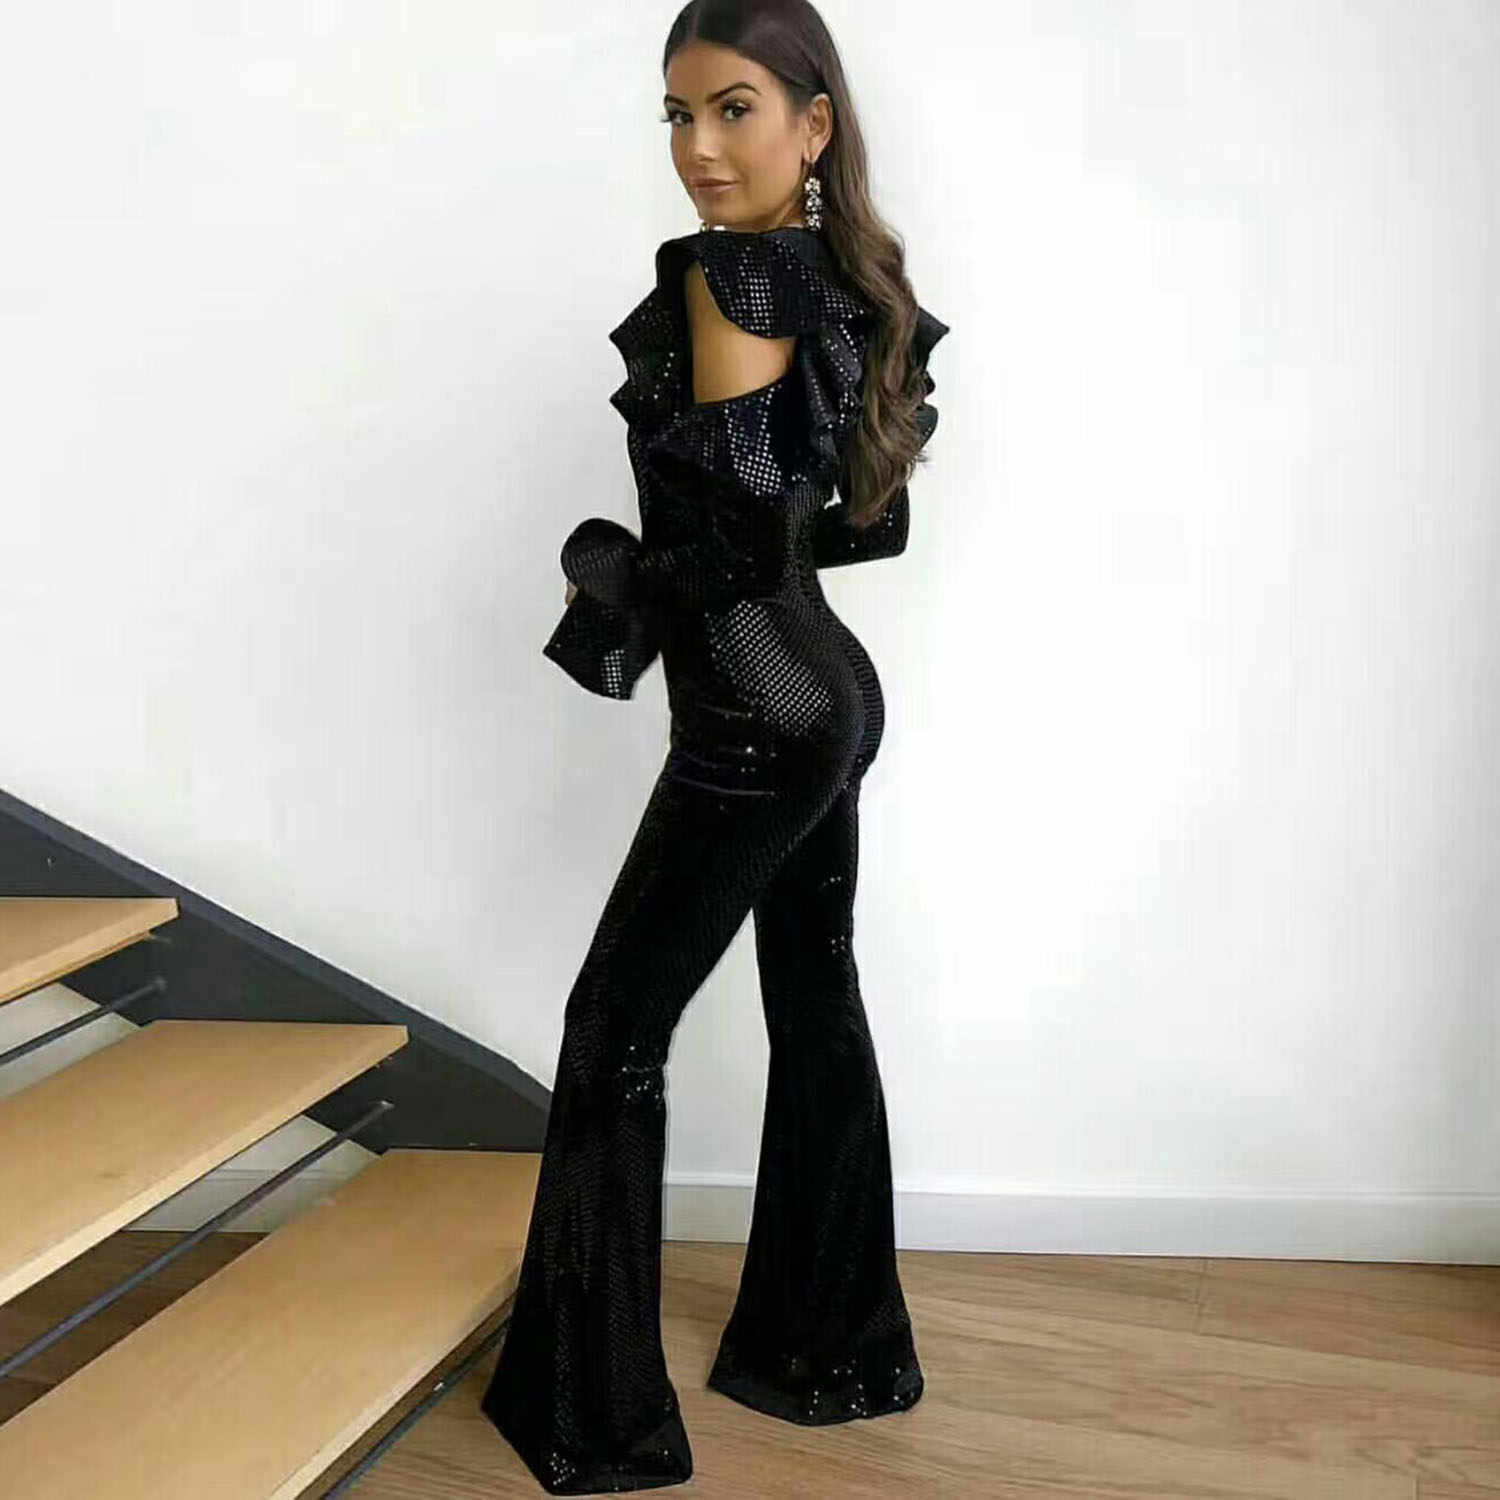 5b9eca6bf27 ... MEQEISS Black Sequin Jumpsuit Women Long Sleeve Sparkly Bodycon  Jumpsuits Sexy Rompers Glitter Club Party Jumpsuits ...